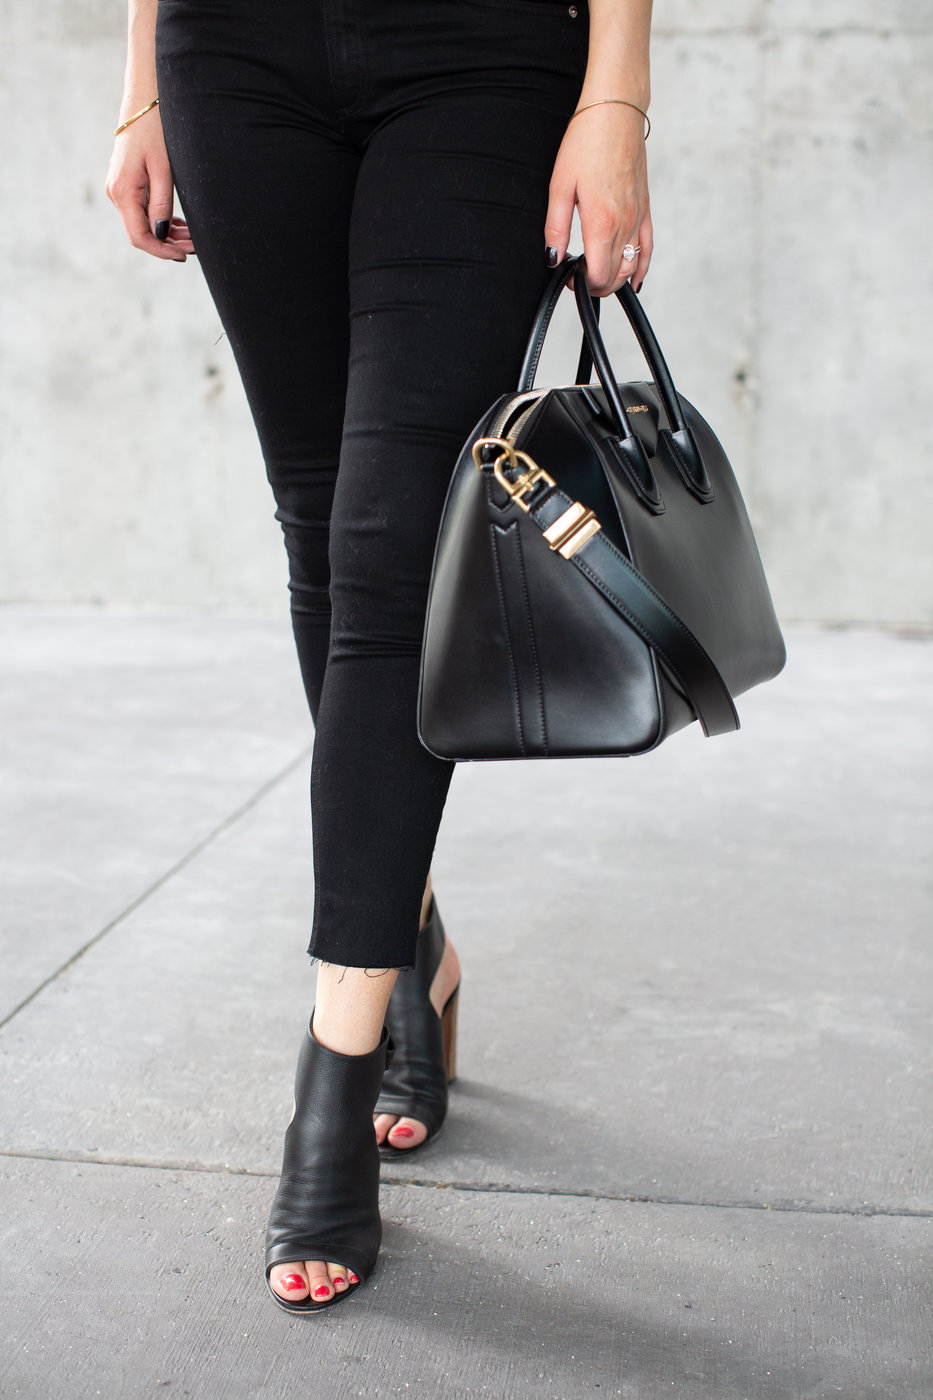 1 person, Vince Addison shoes, Givenchy antigona bag